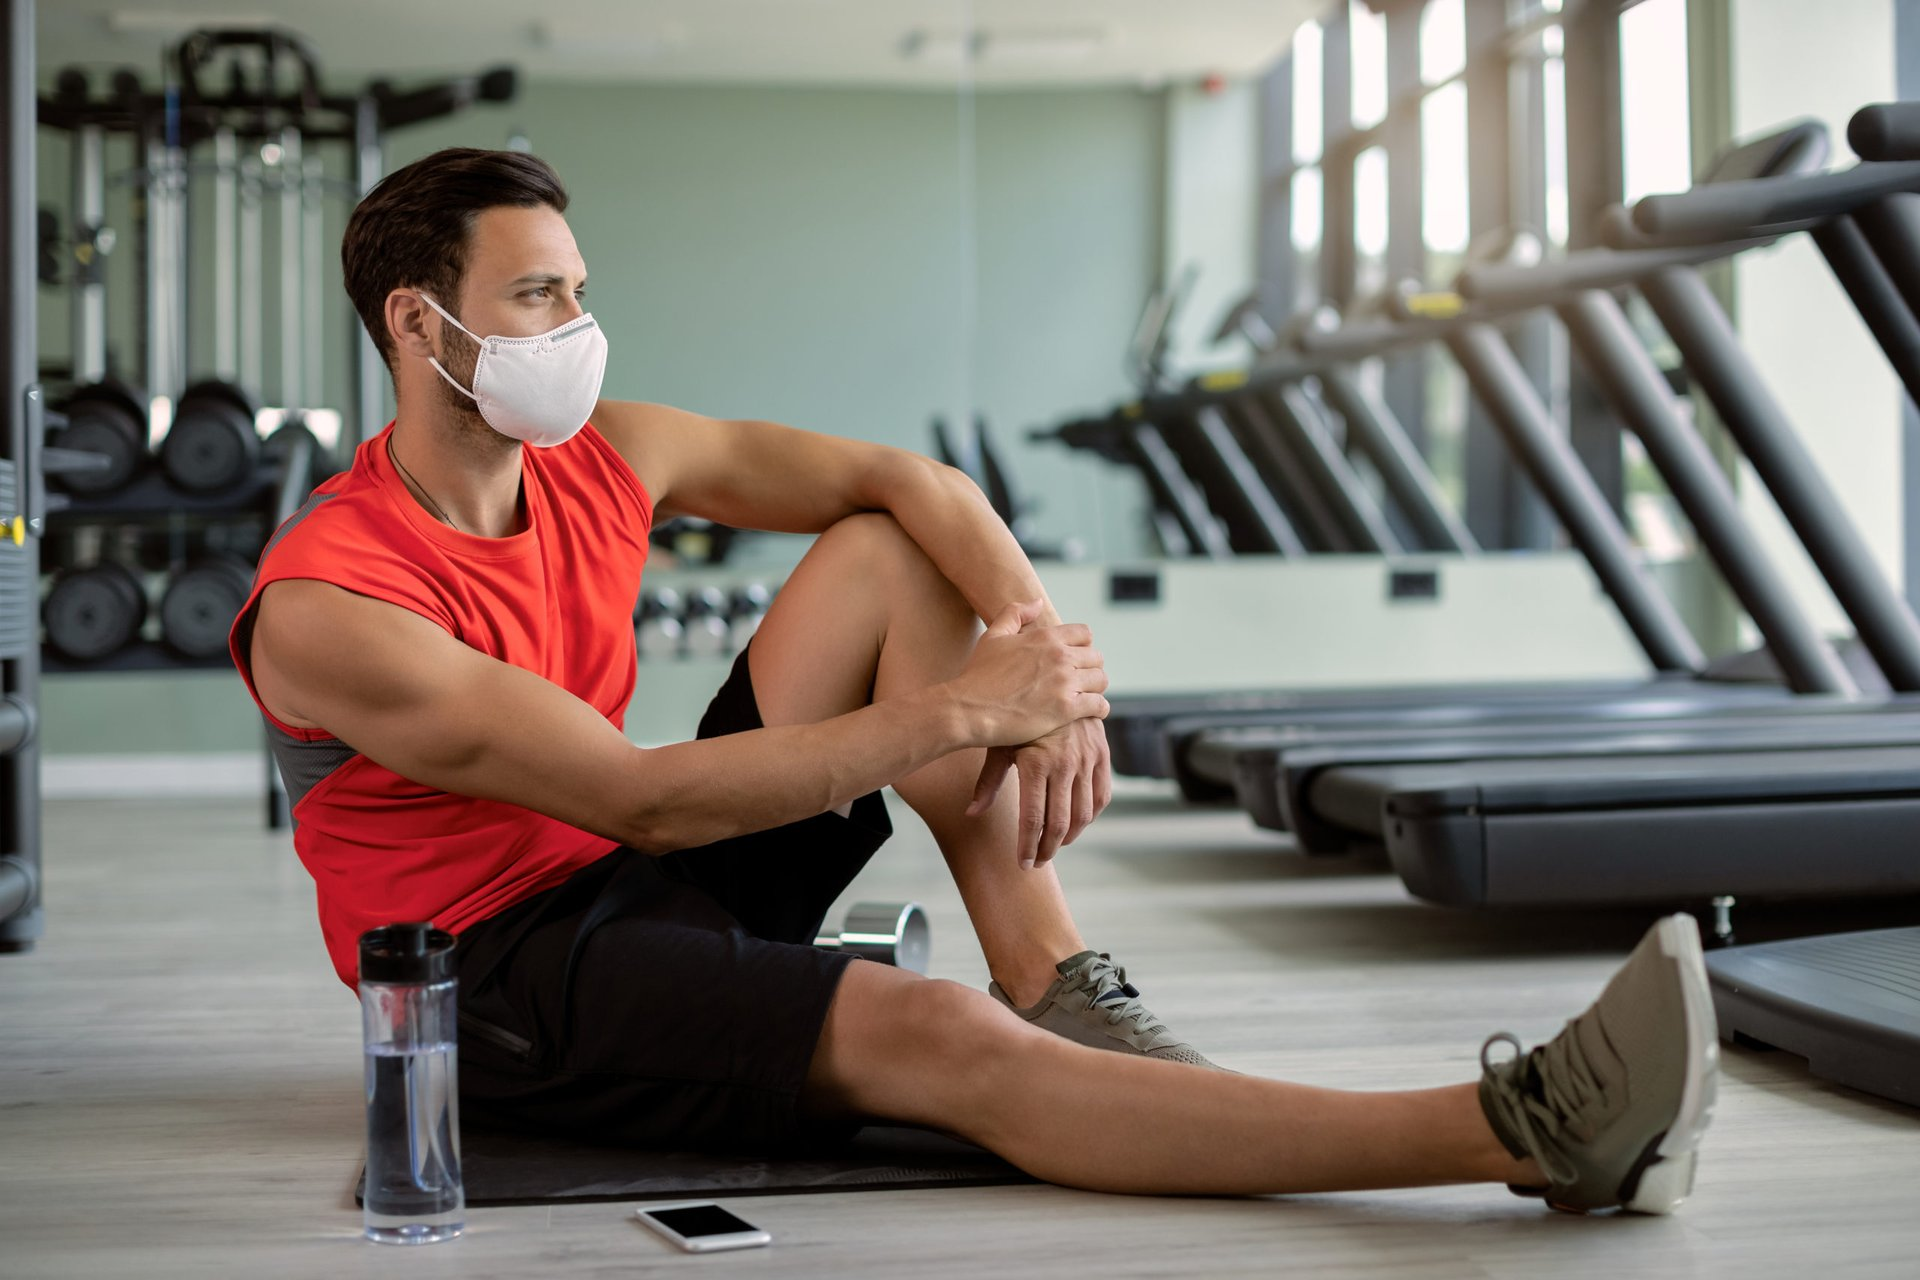 Man exercising with mask